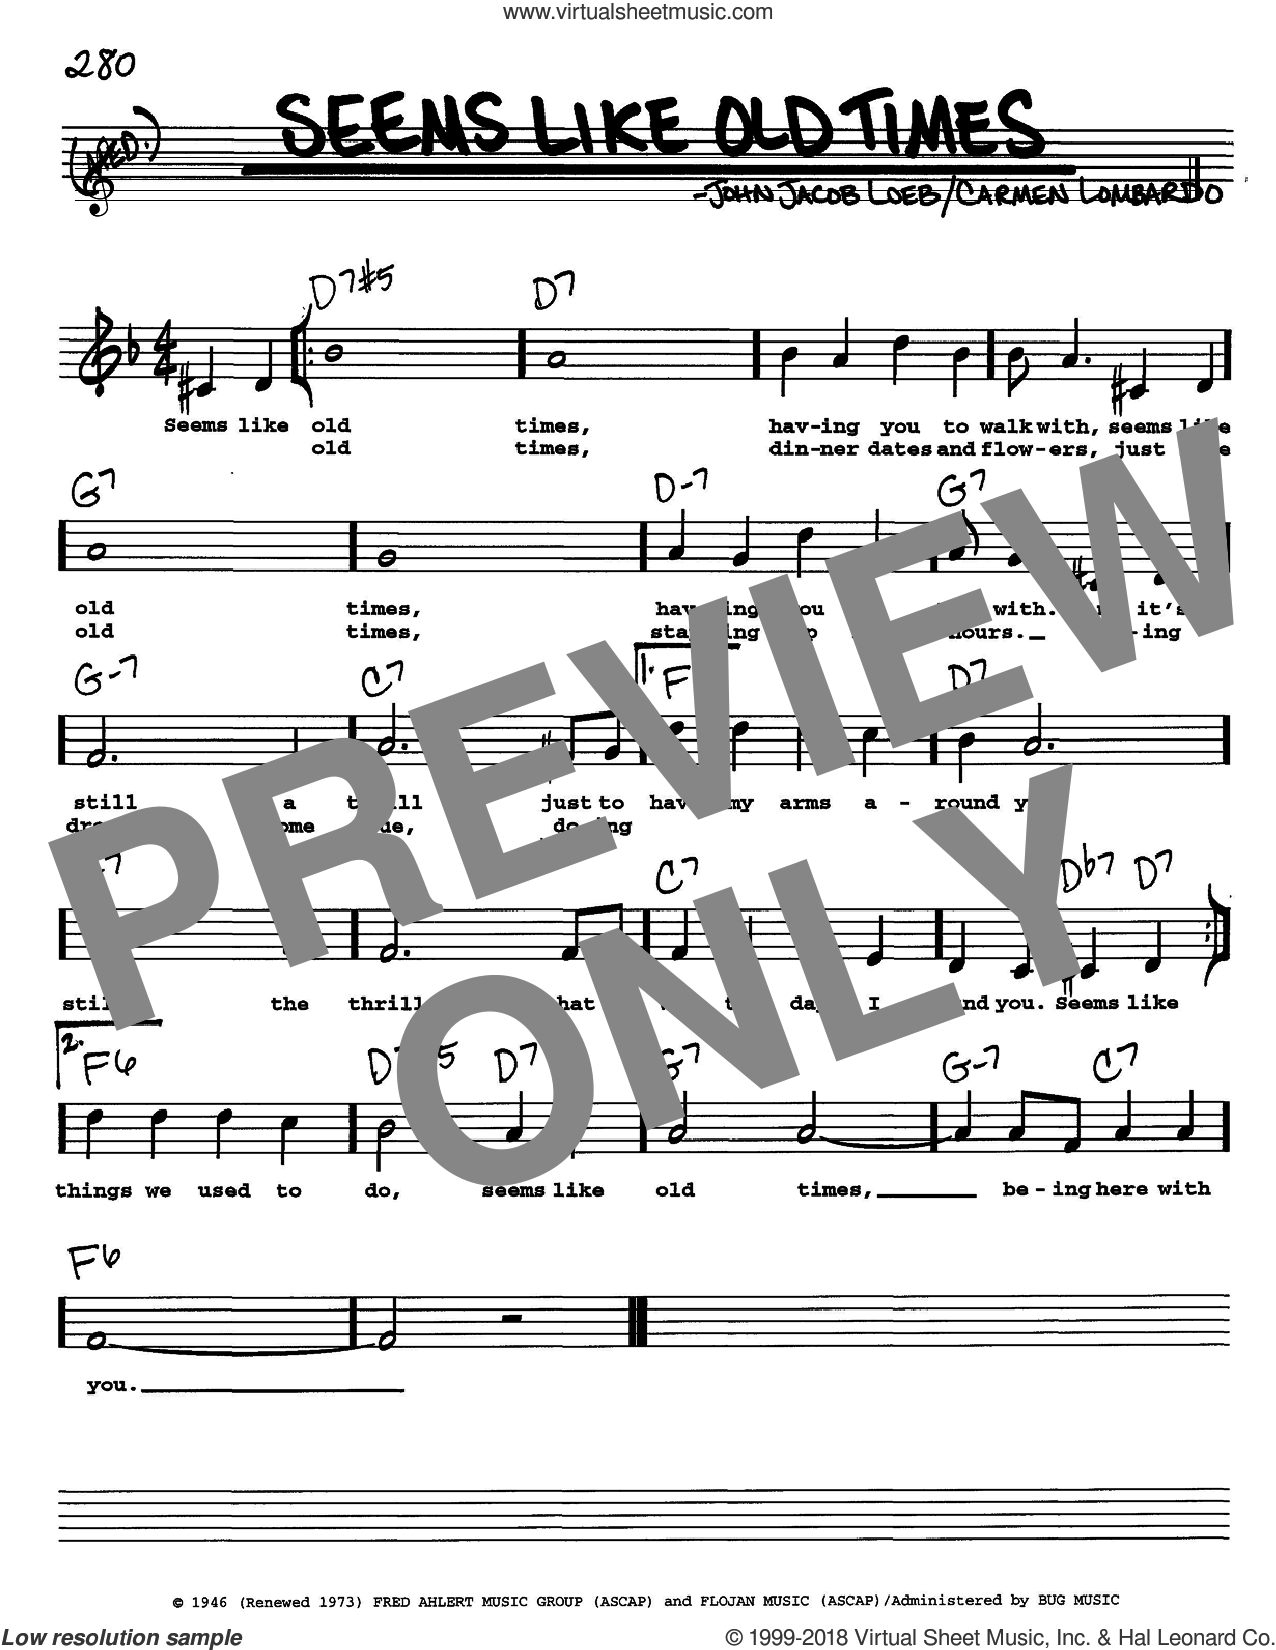 Seems Like Old Times sheet music for voice and other instruments  by John Jacob Loeb and Carmen Lombardo, intermediate skill level